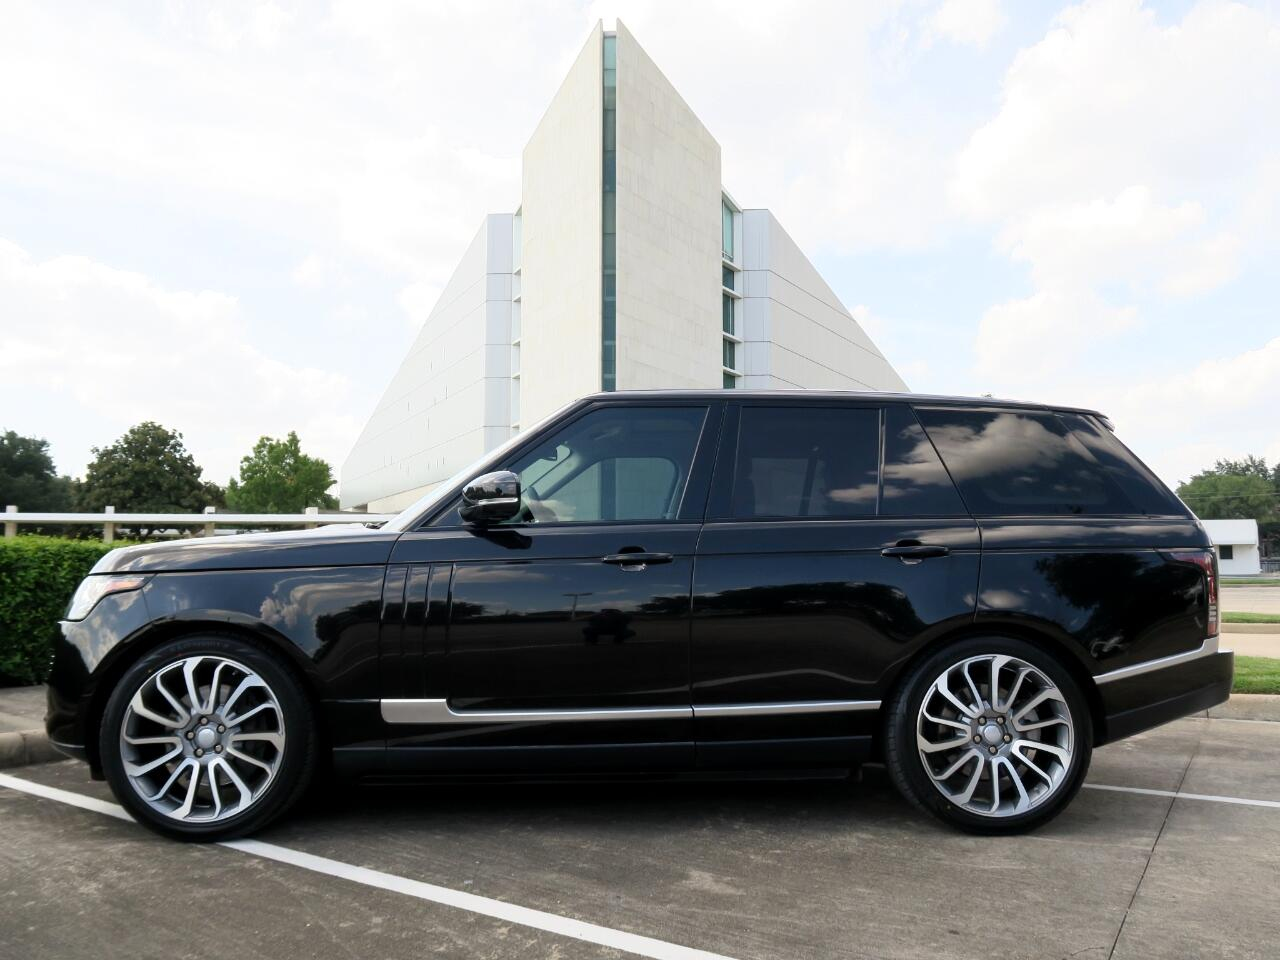 Land Rover Range Rover 4WD 4dr HSE 2013